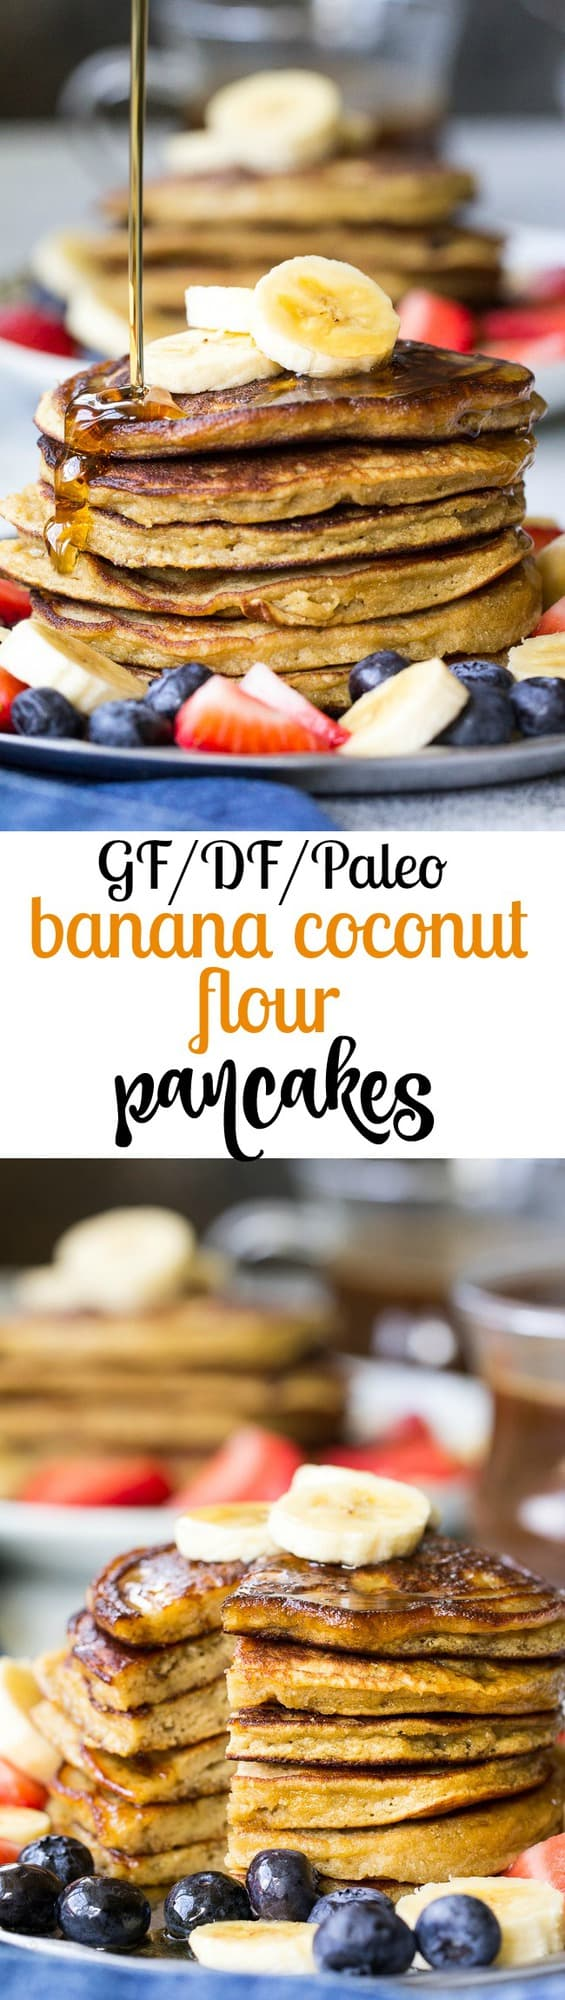 These Paleo banana coconut flour pancakes are so perfectly fluffy, moist and sweet that you won't believe they're grain free, dairy free, nut free and refined sugar free! Your family's paleo breakfast just got a delicious addition!